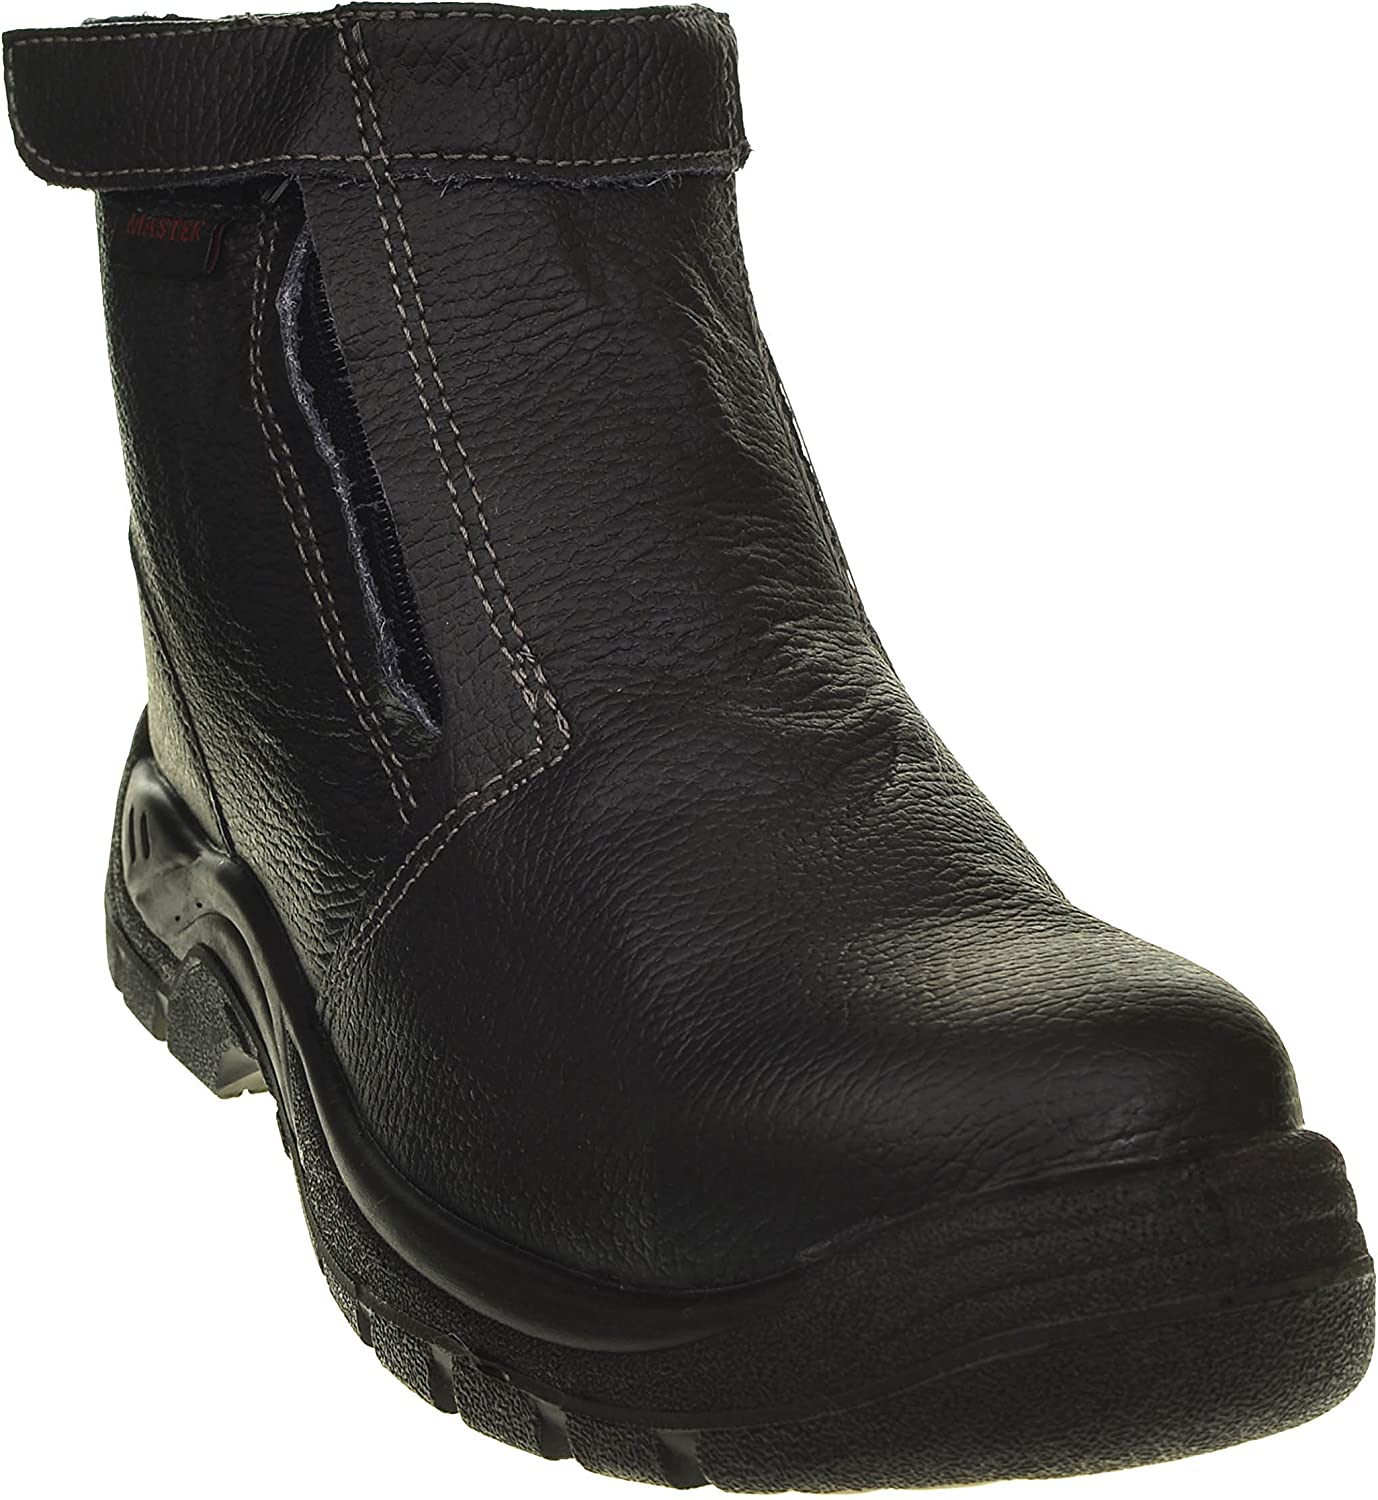 Mens Master Velcro Ankle Boots Work